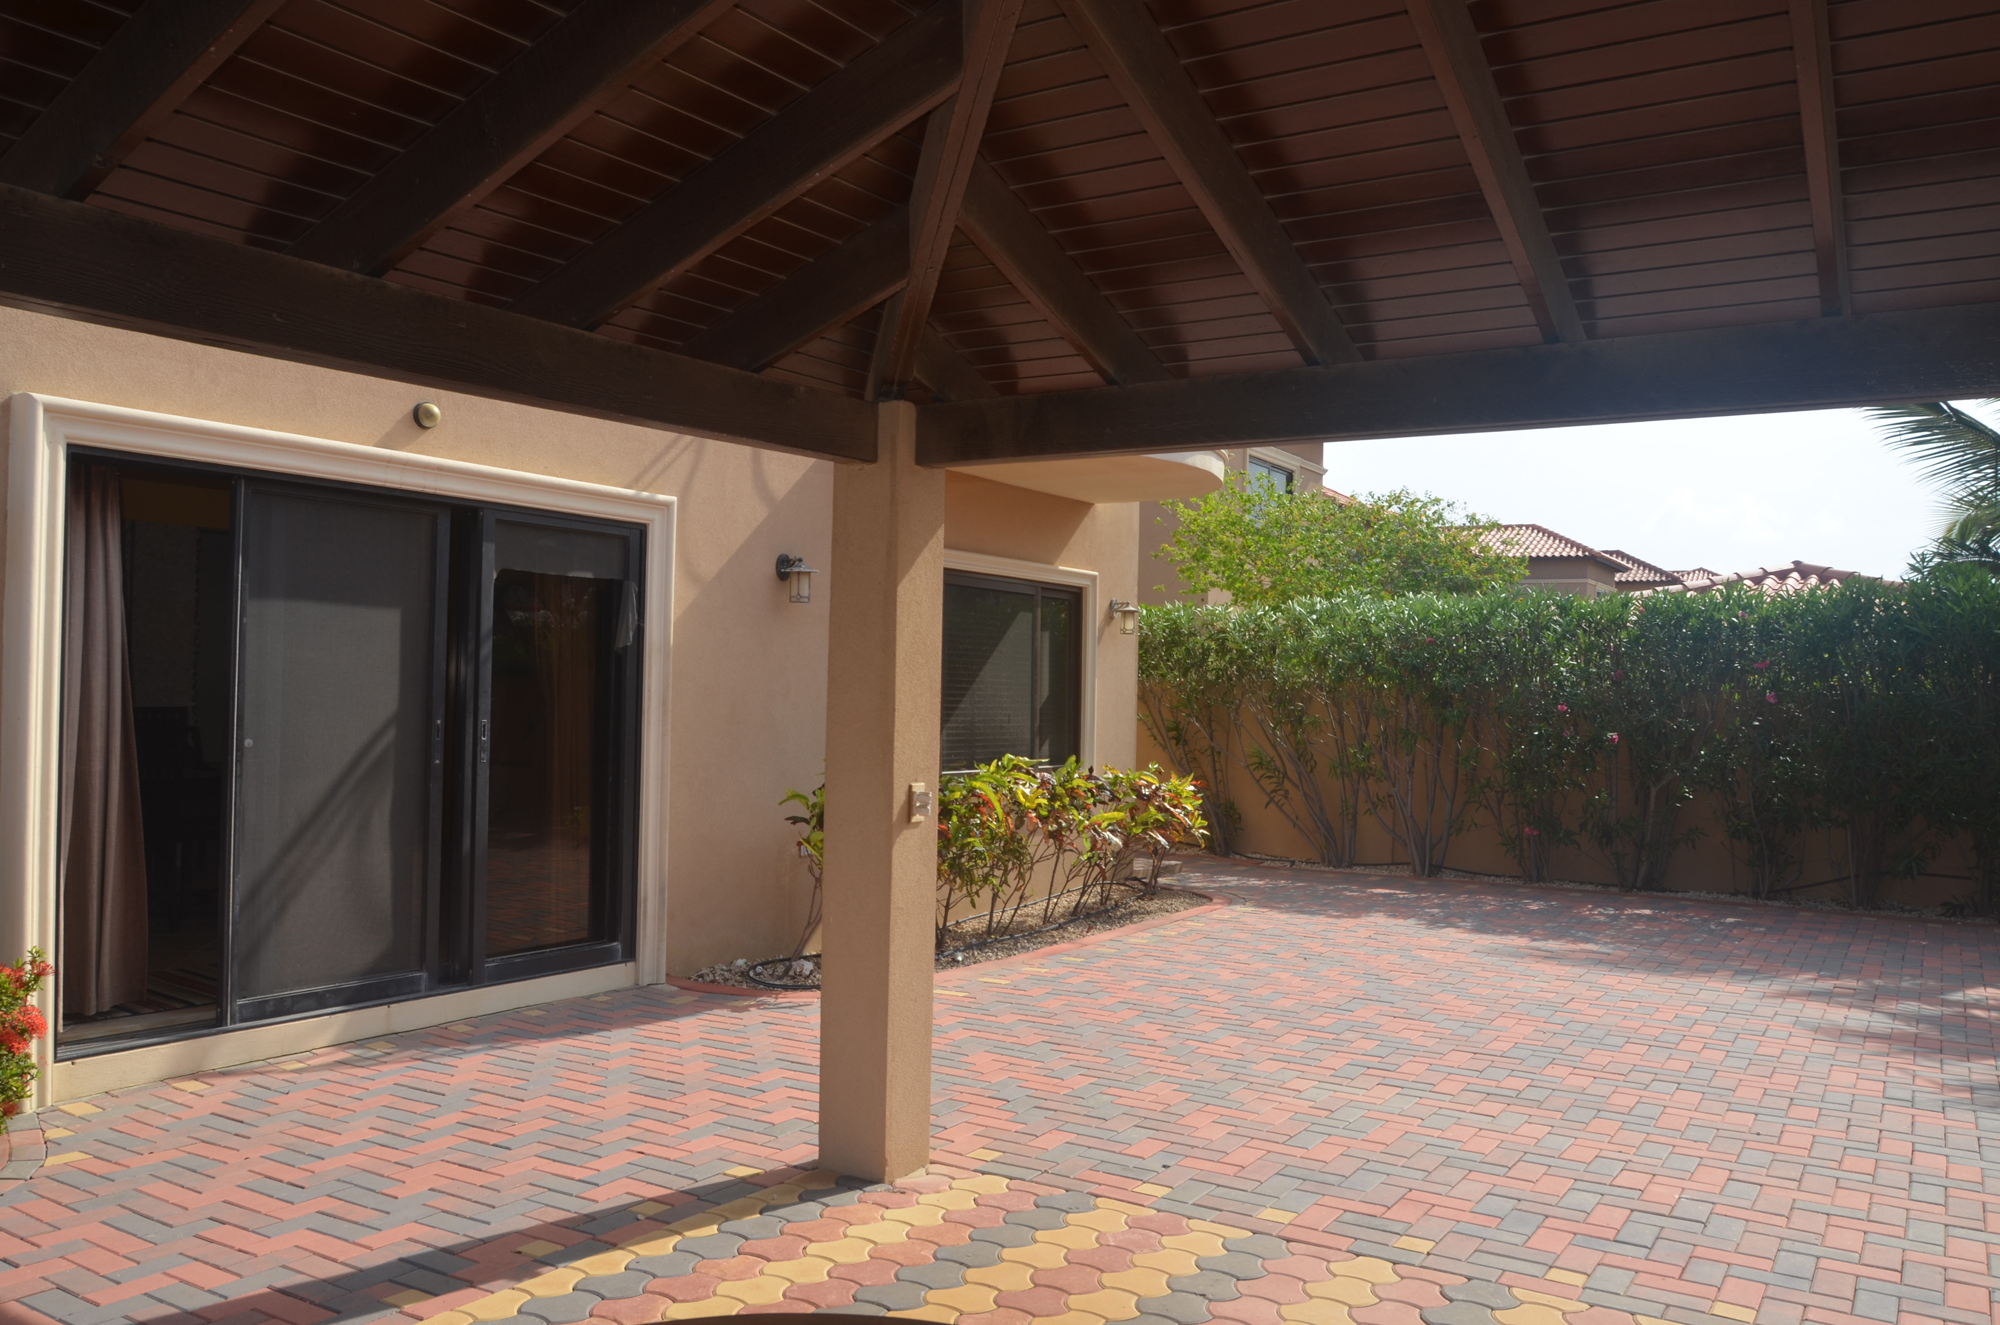 Additional photo for property listing at Villa Basiruti Gold Coast Residence Malmok, Aruba 21000 Aruba